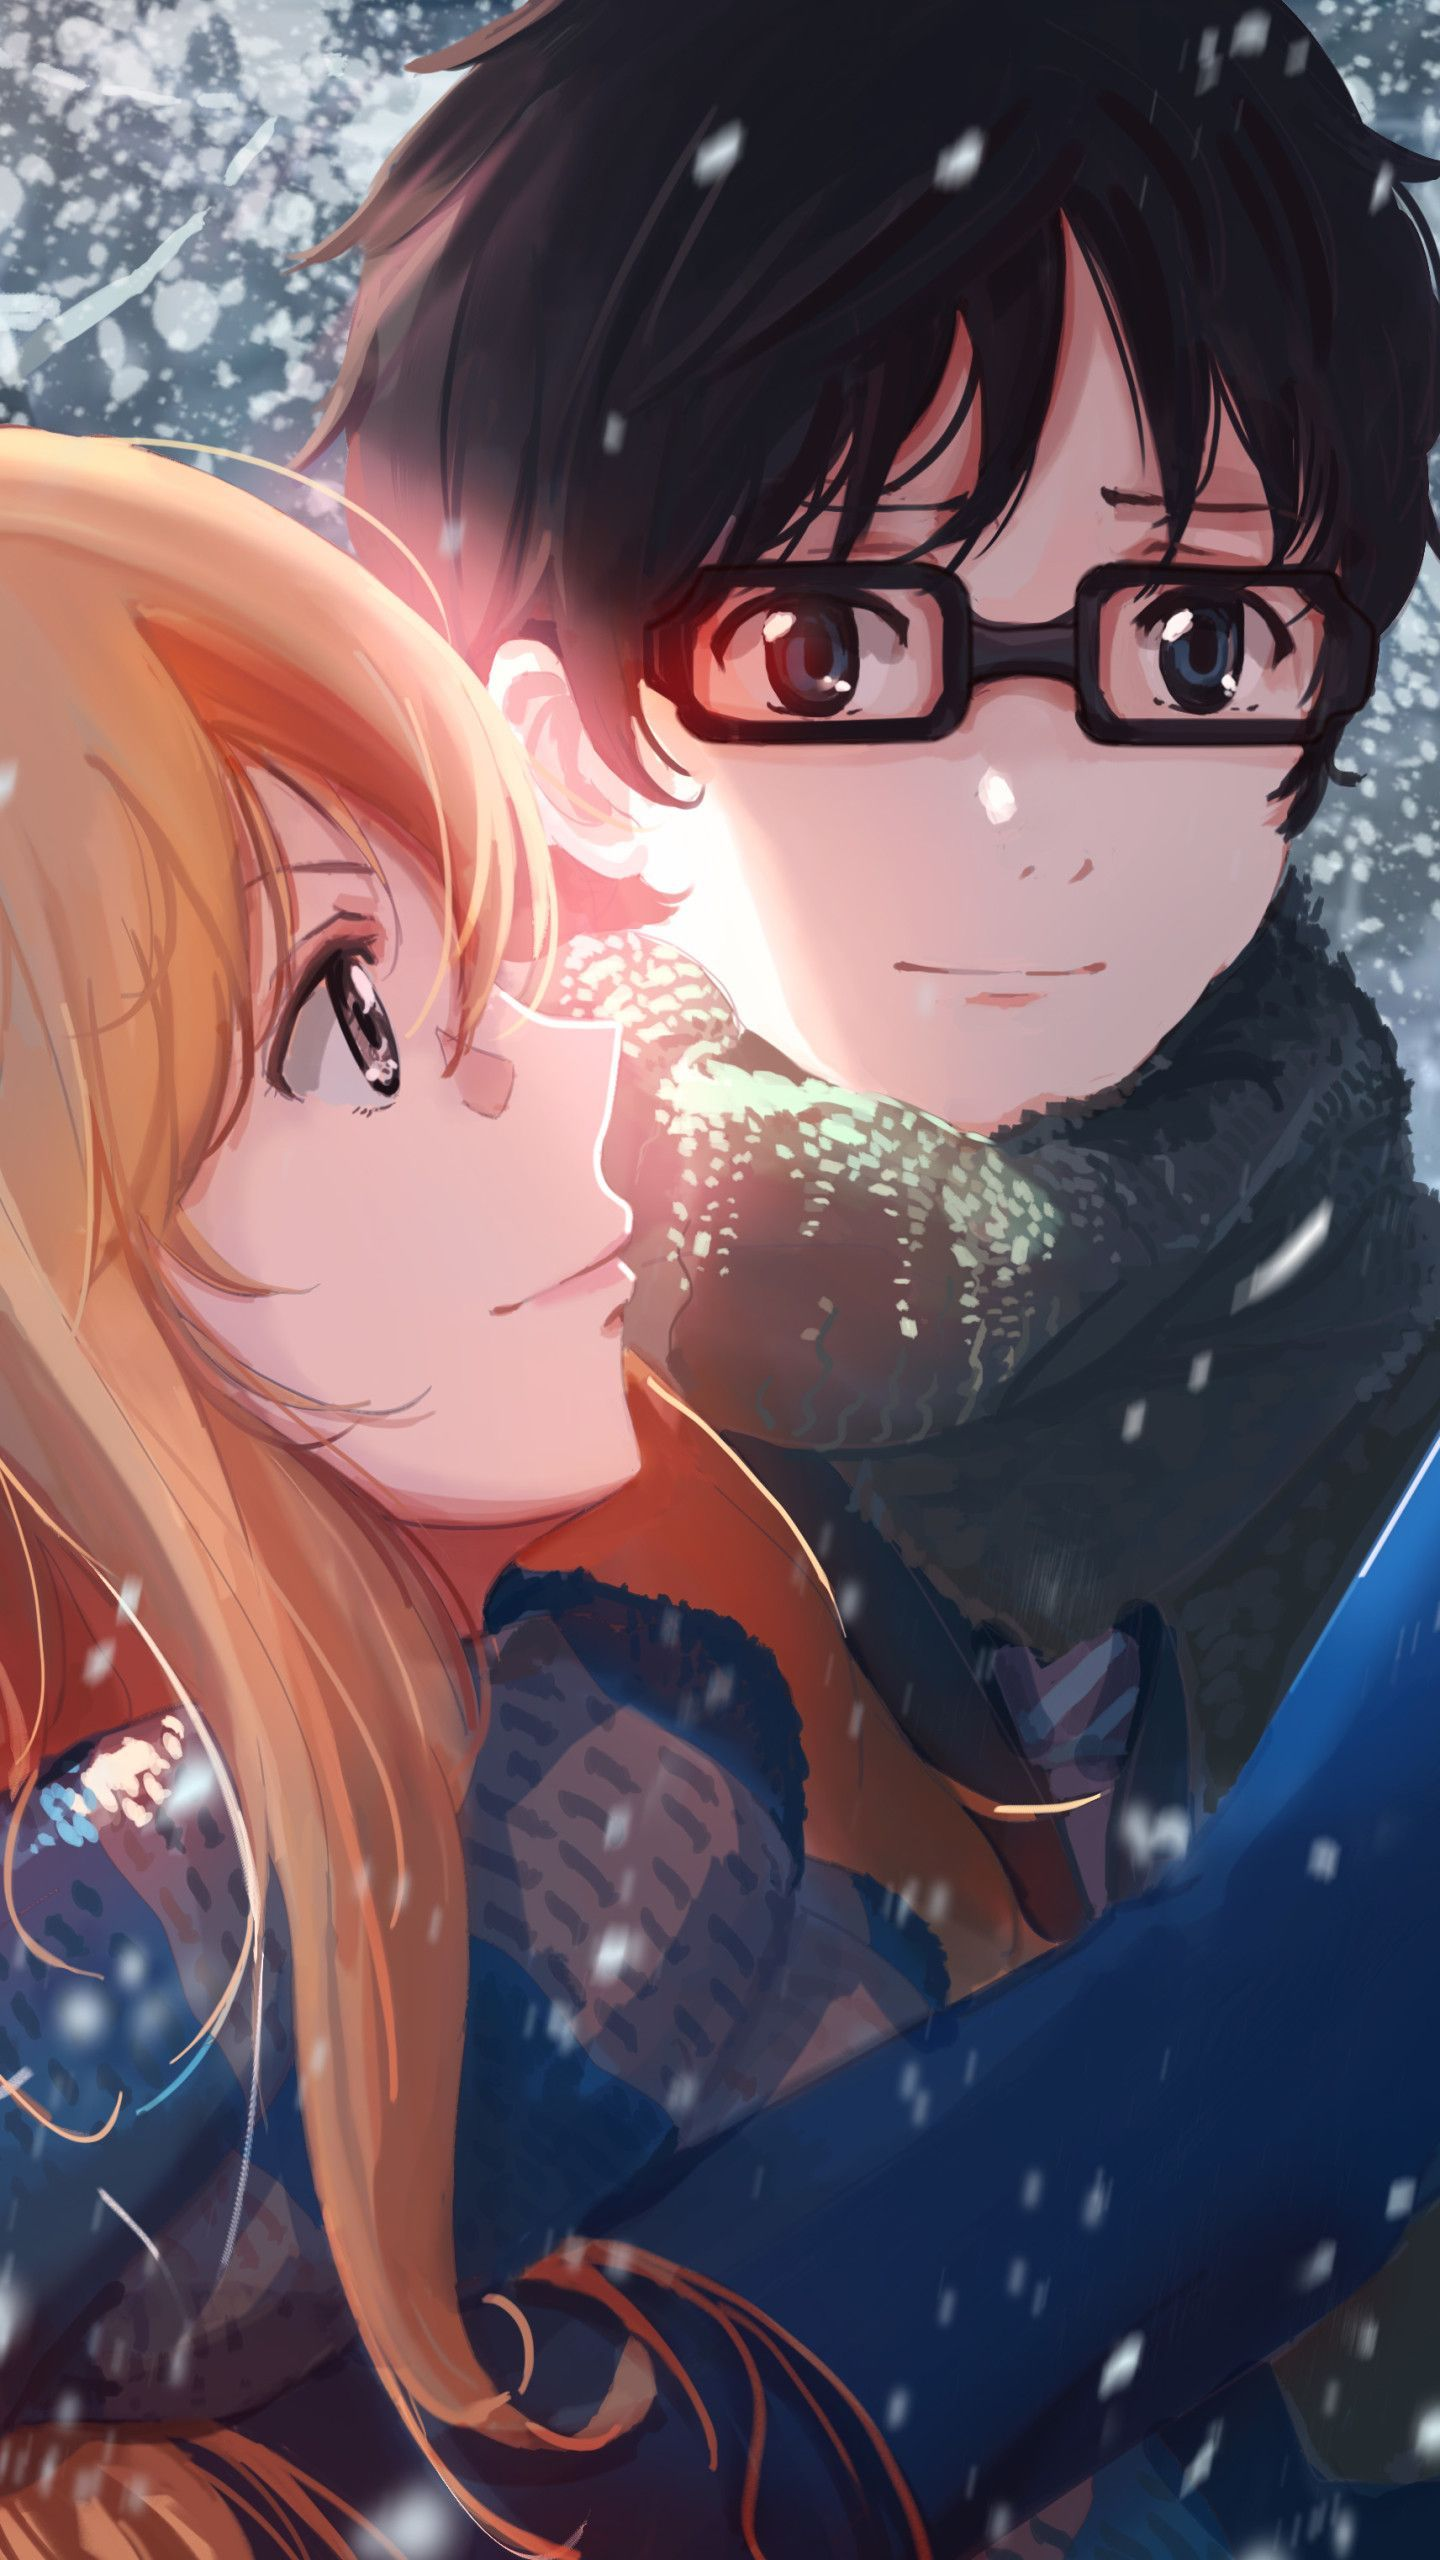 Your Lie In April Iphone Wallpapers Top Free Your Lie In April Iphone Backgrounds Wallpaperaccess Your Lie In April Anime Anime Love Awesome phone your lie in april anime